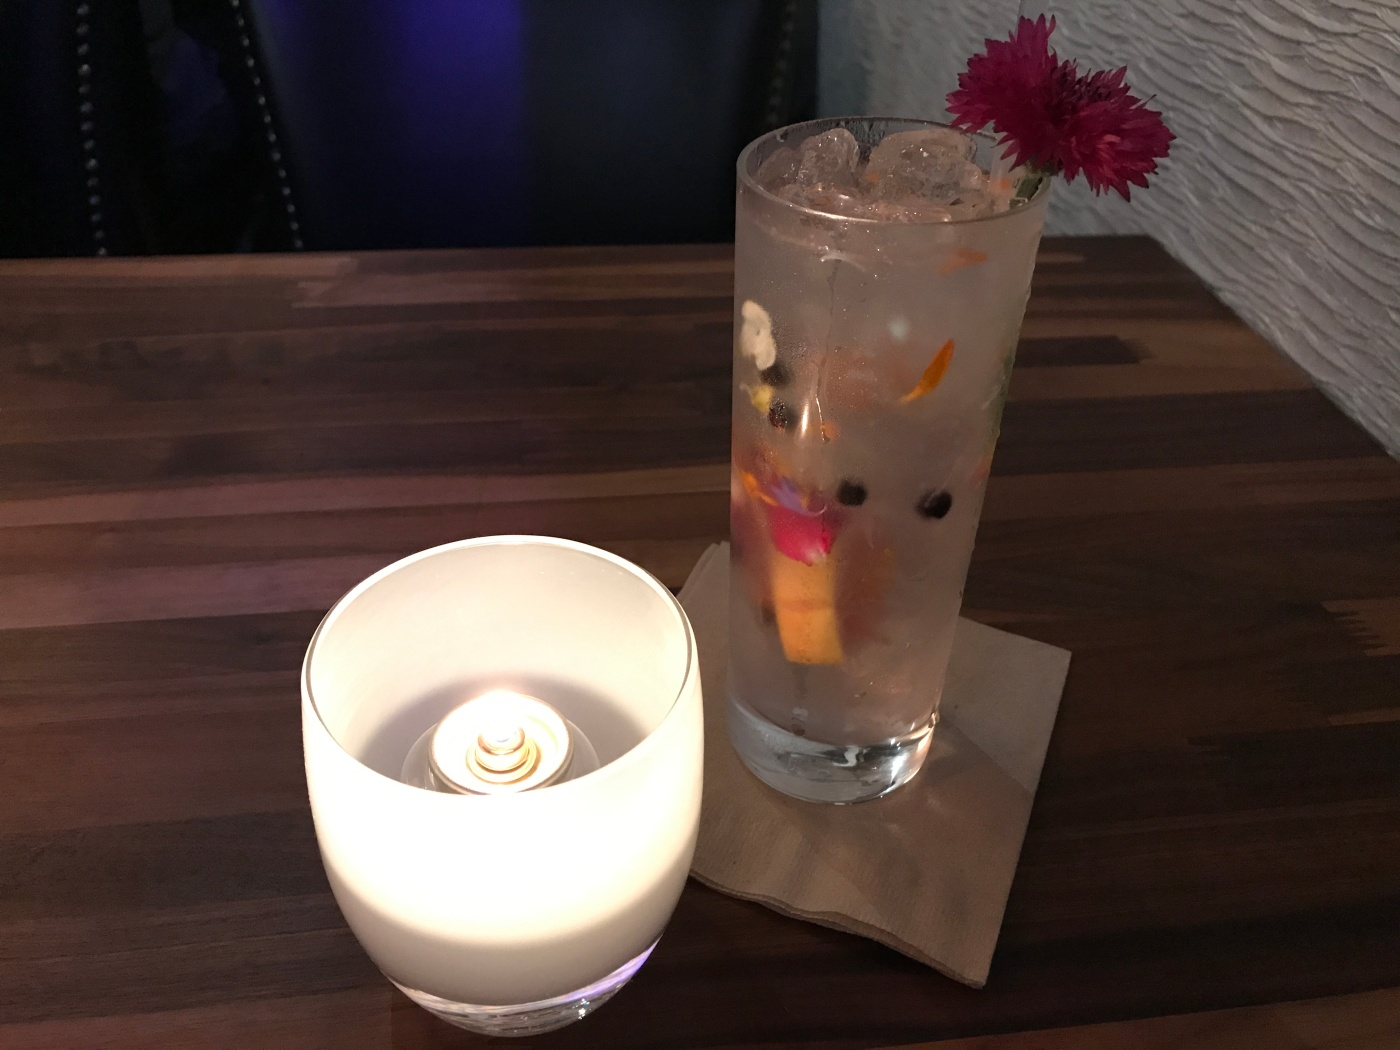 An Asa G&T - A Gin and Tonic made with Grapefruit and Edible Flowers at Asa in Los Altos, California